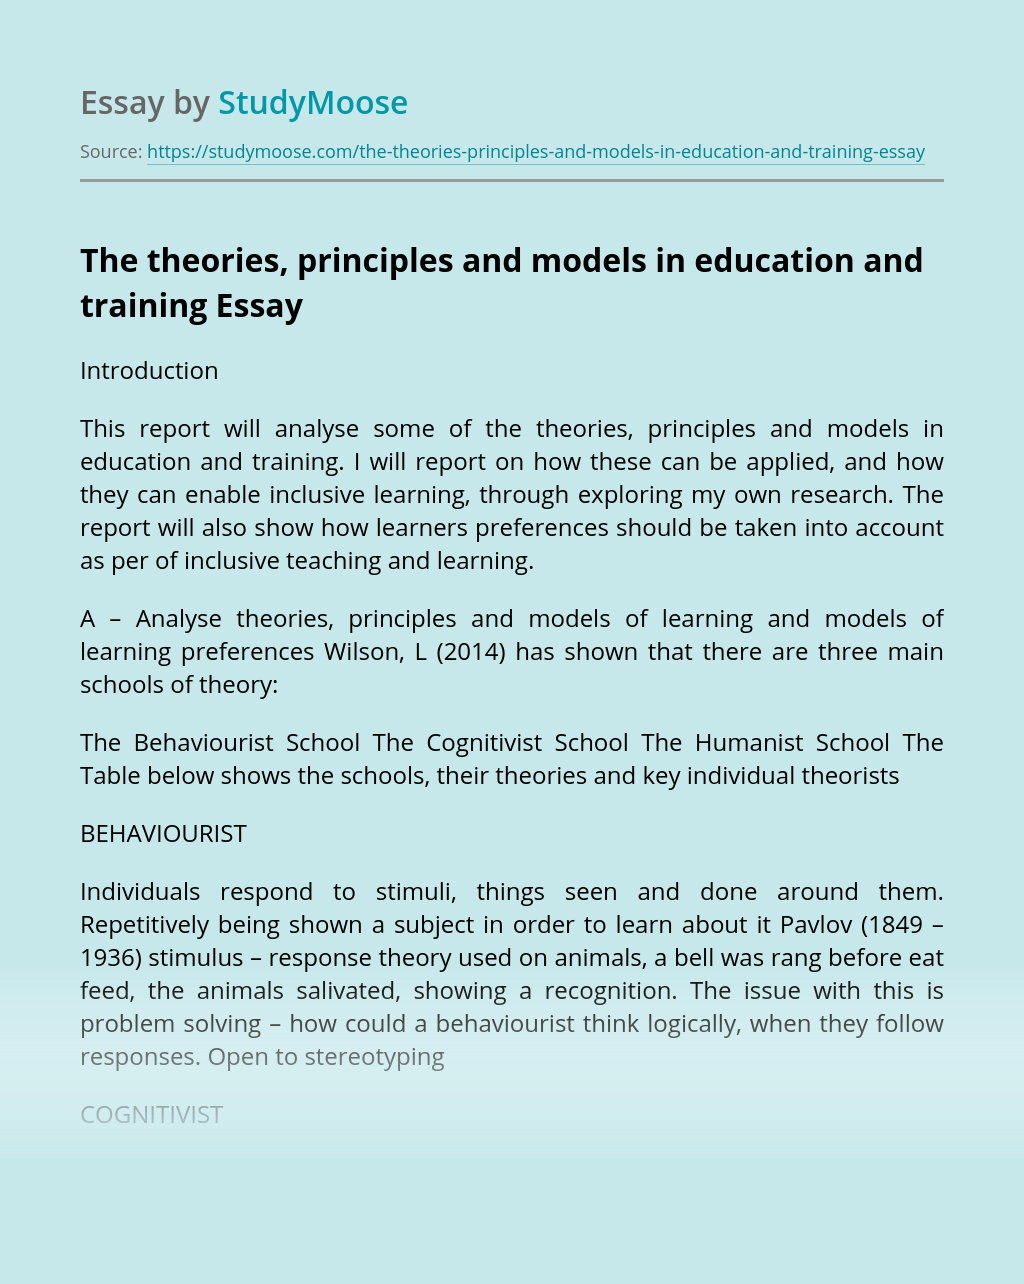 The theories, principles and models in education and training